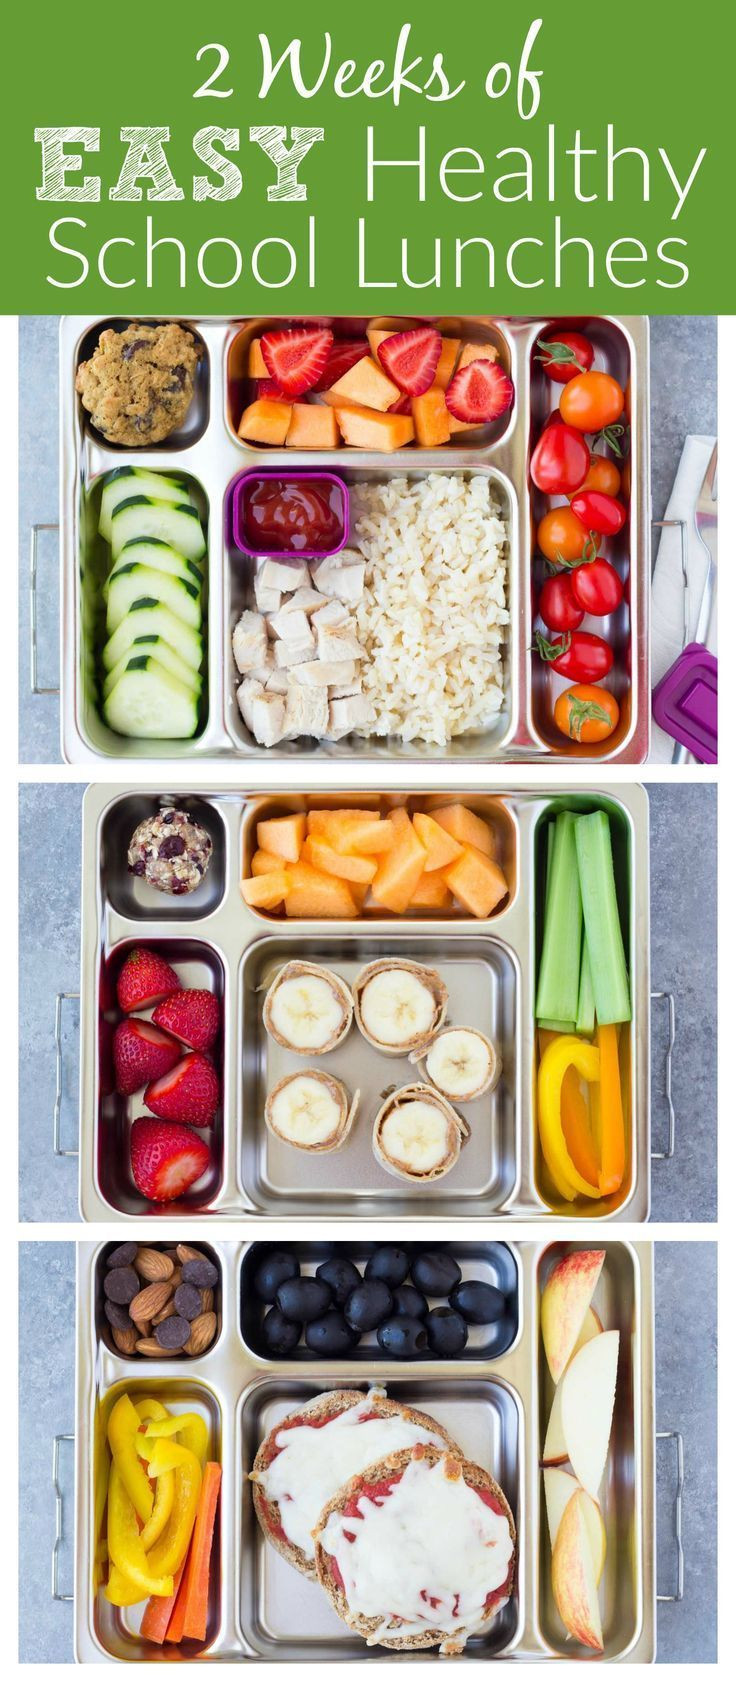 Healthy Foods For Kids' School Lunches  747 best images about Lunch Box Ideas on Pinterest